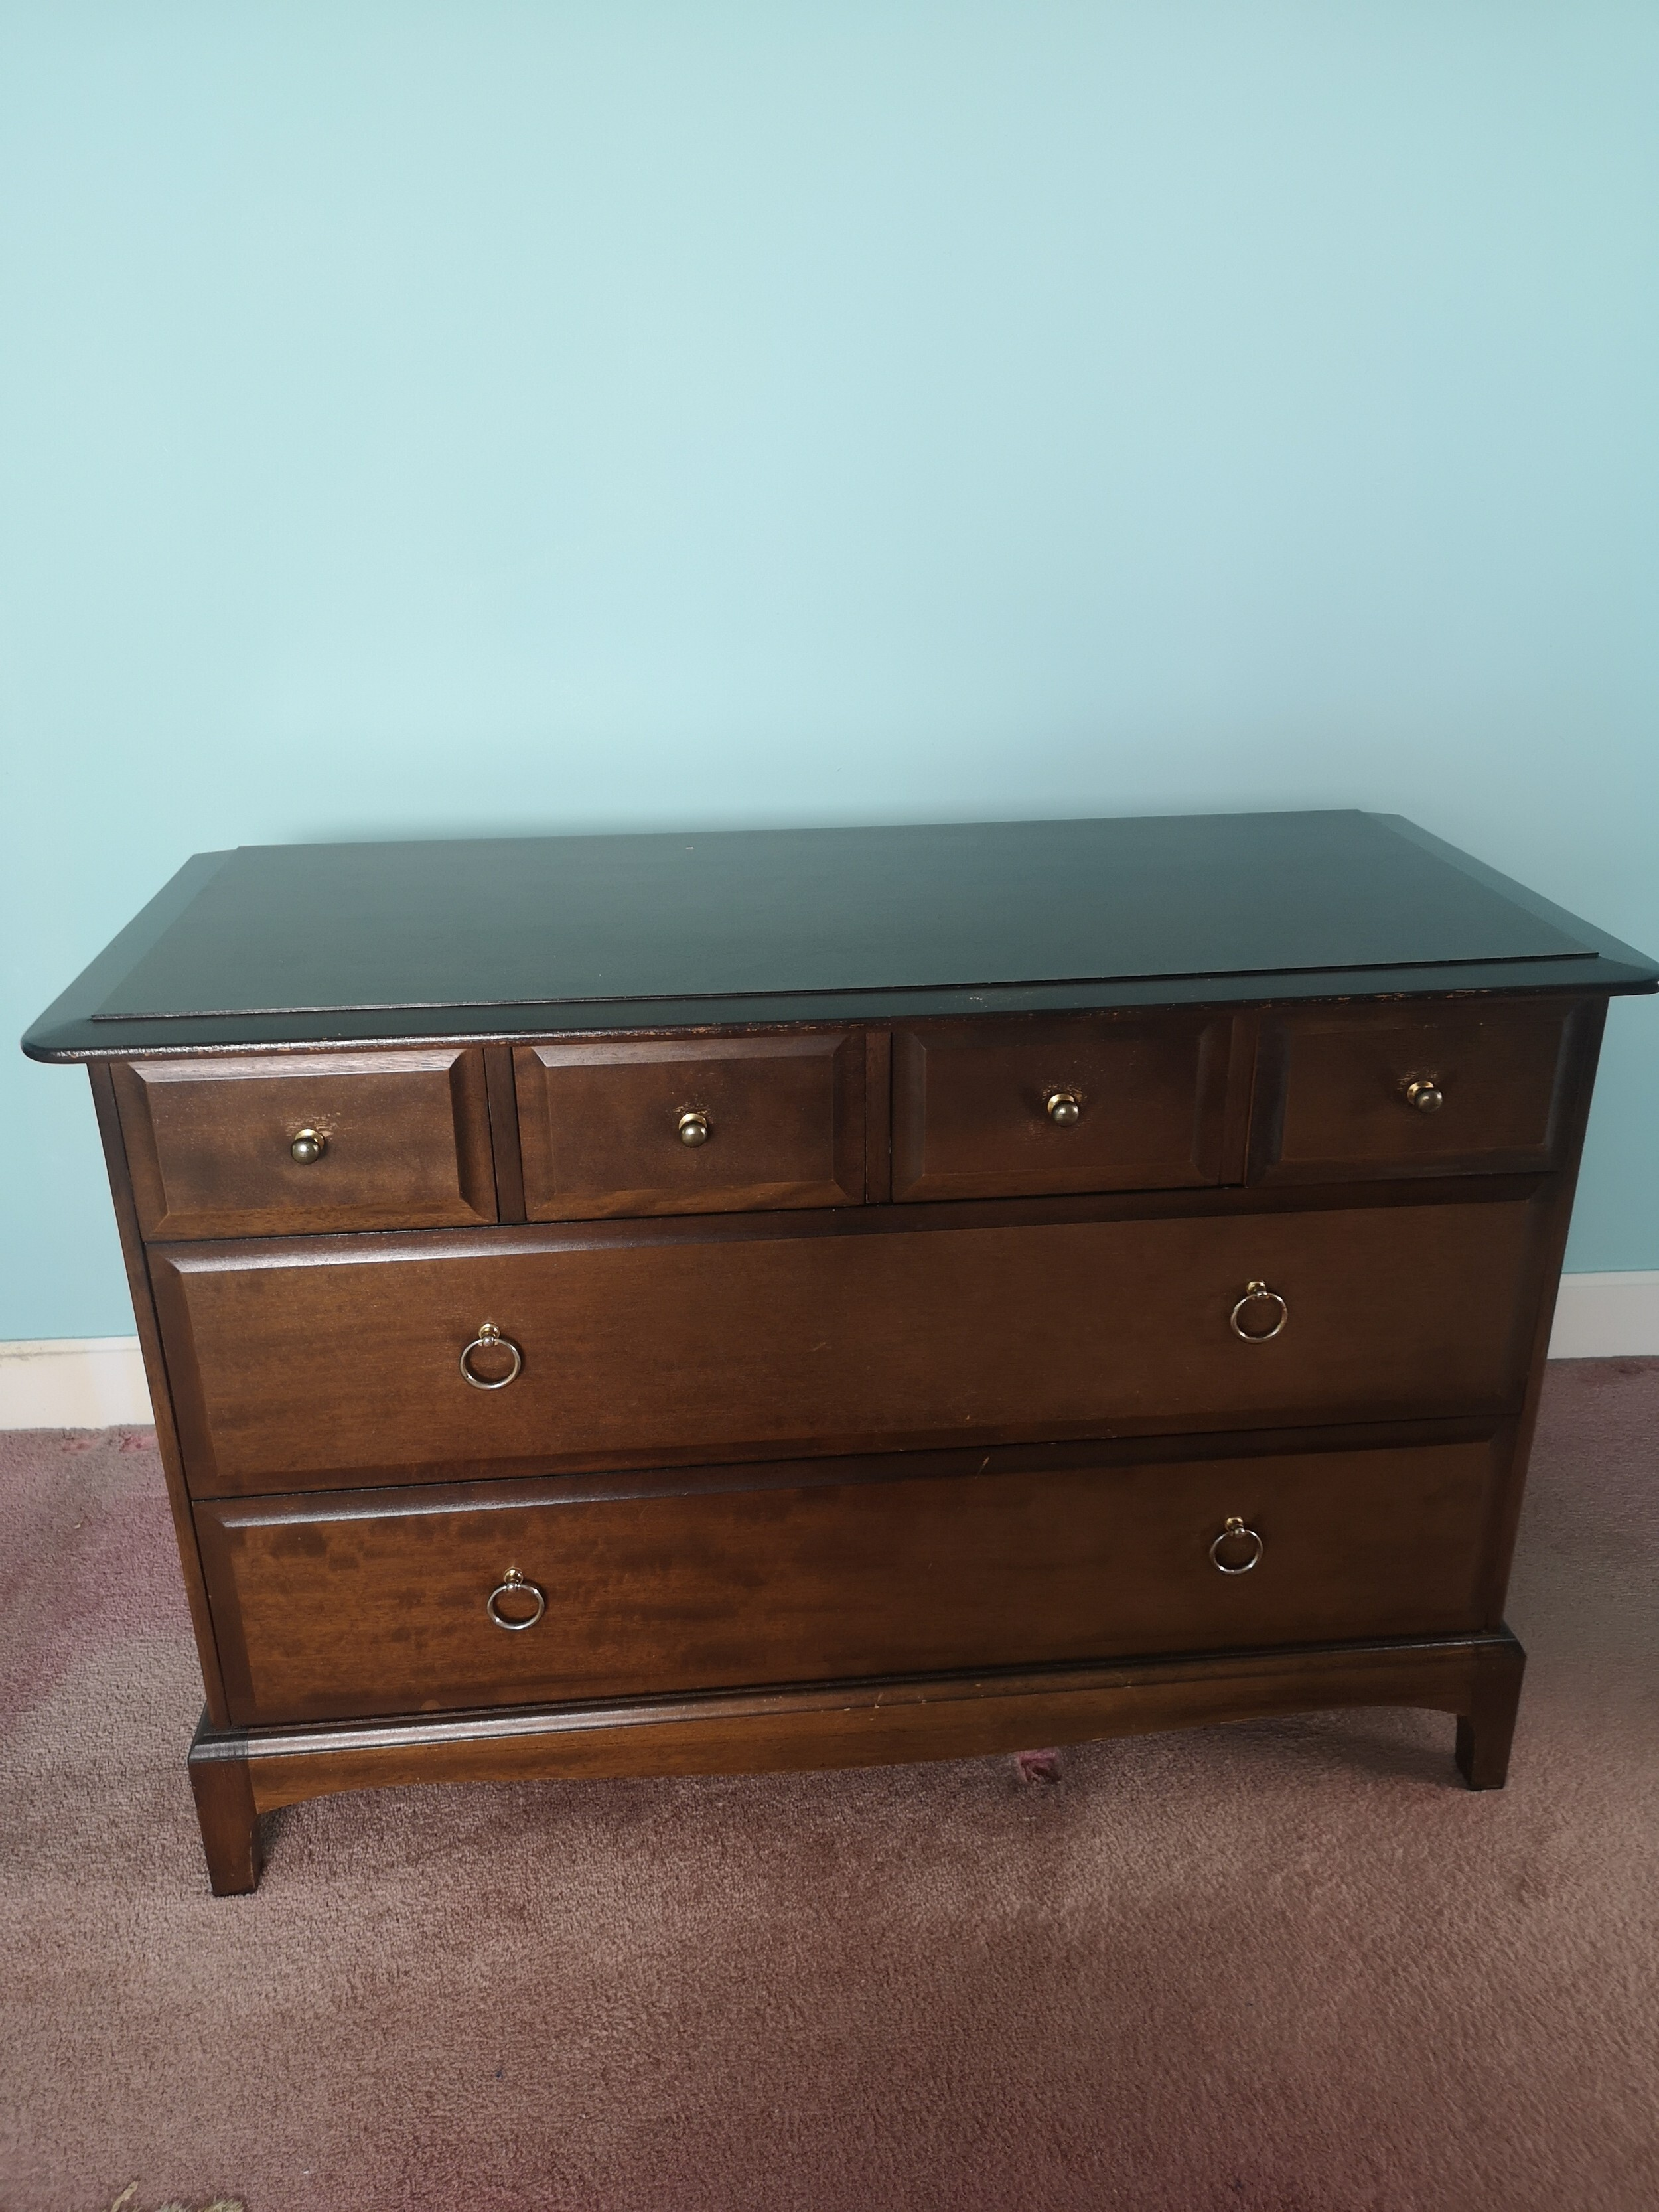 Stag minstrel chest of drawers. Late entry's images will be added tomorrow.